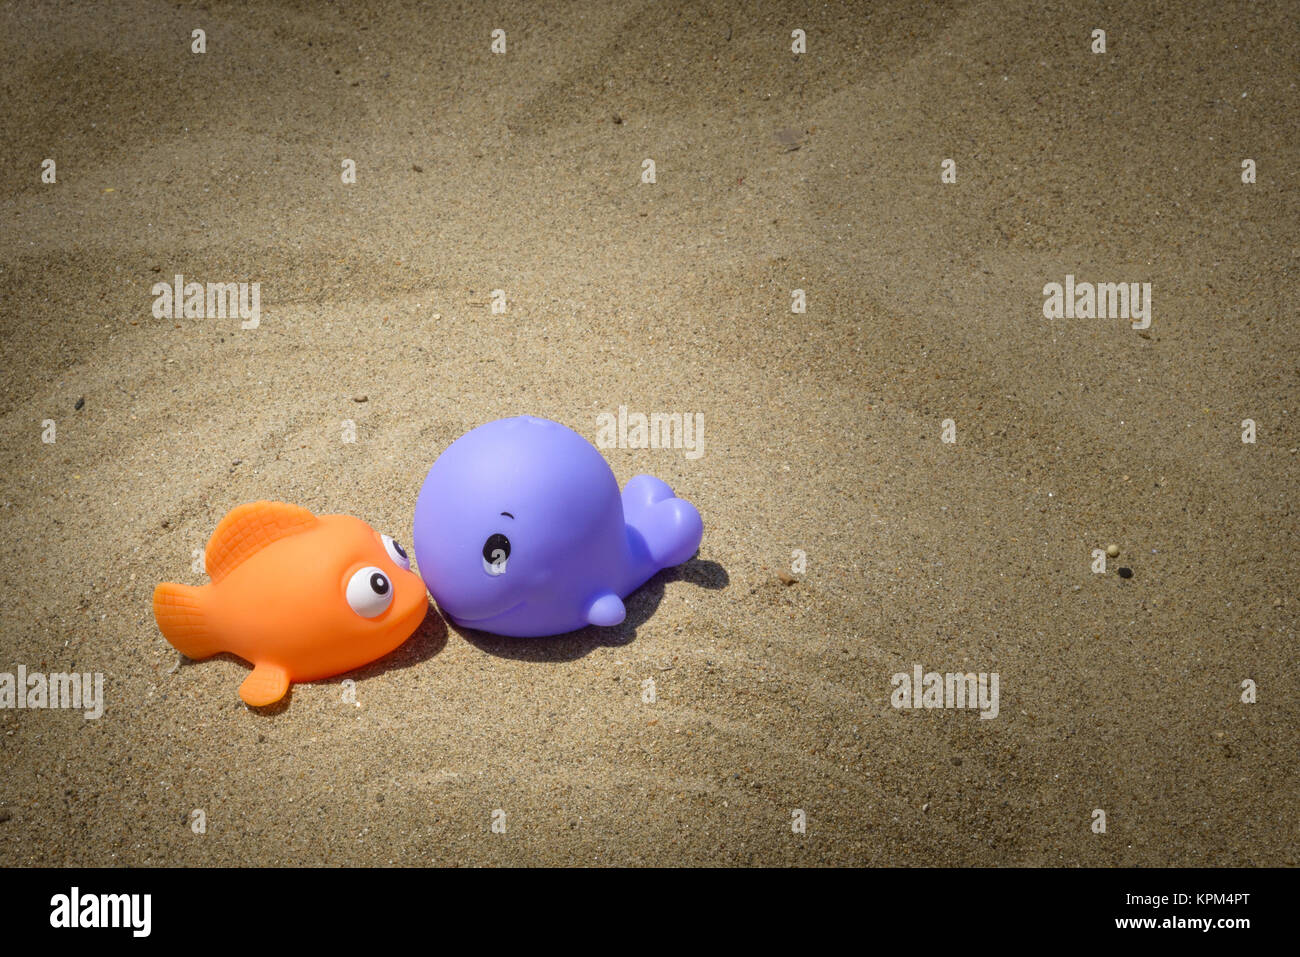 Kiss Fish Stock Photos & Kiss Fish Stock Images - Alamy